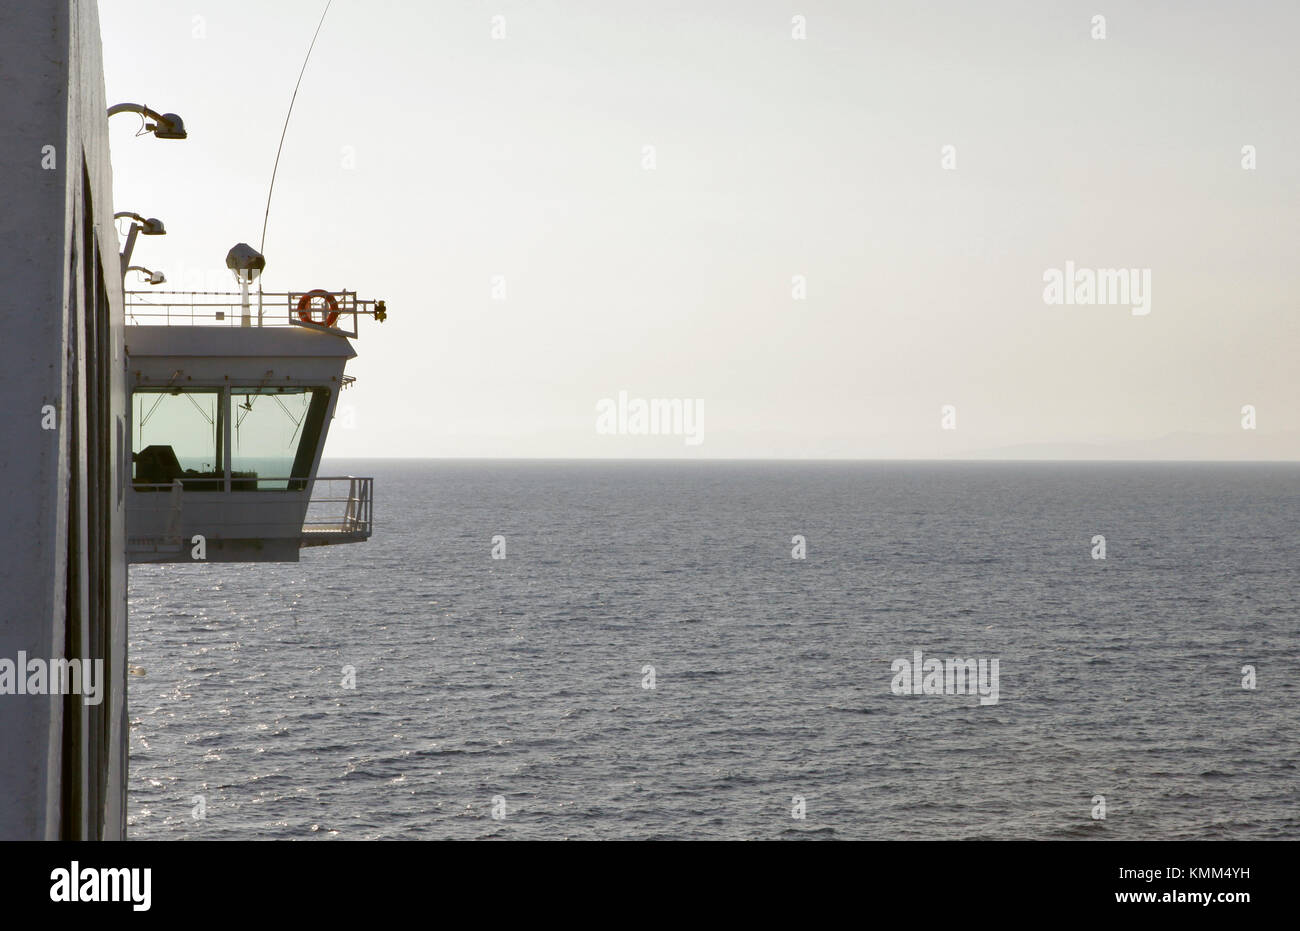 a view from a ferry on the mediterranean sea heading to the port of barcelona, spain with the ships bridge in view, - Stock Image